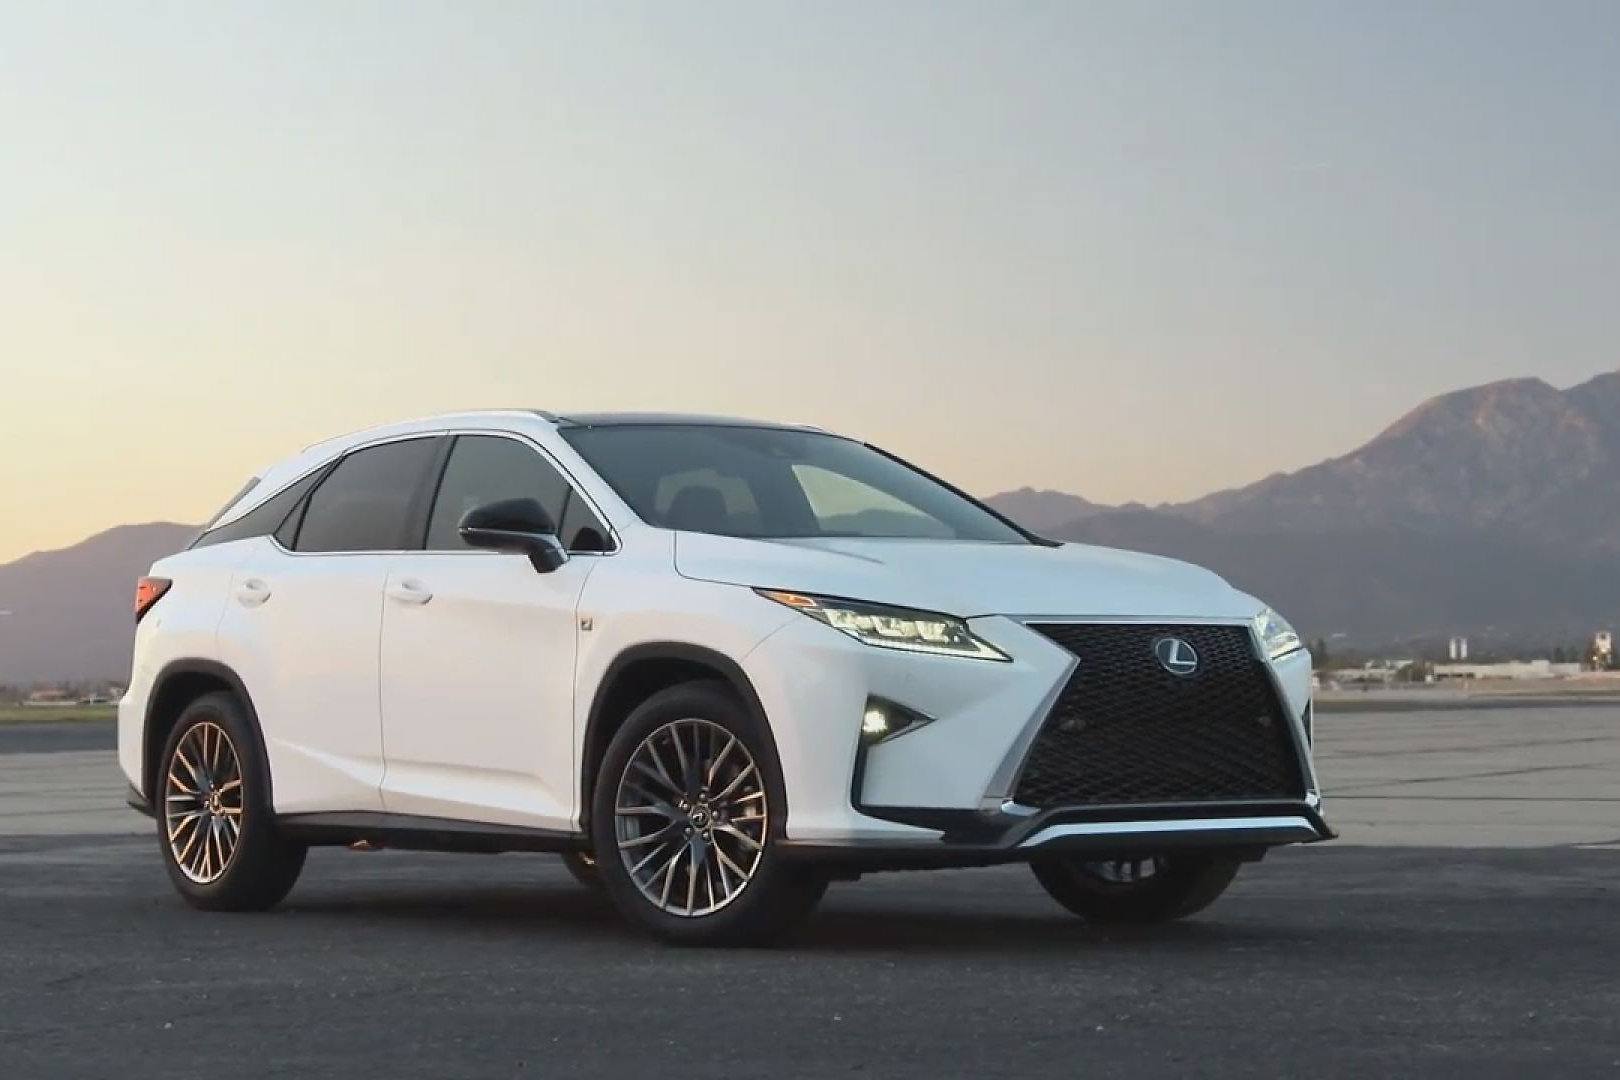 lease north new rx car a specials and image miami lexus used dealer is drive of sign